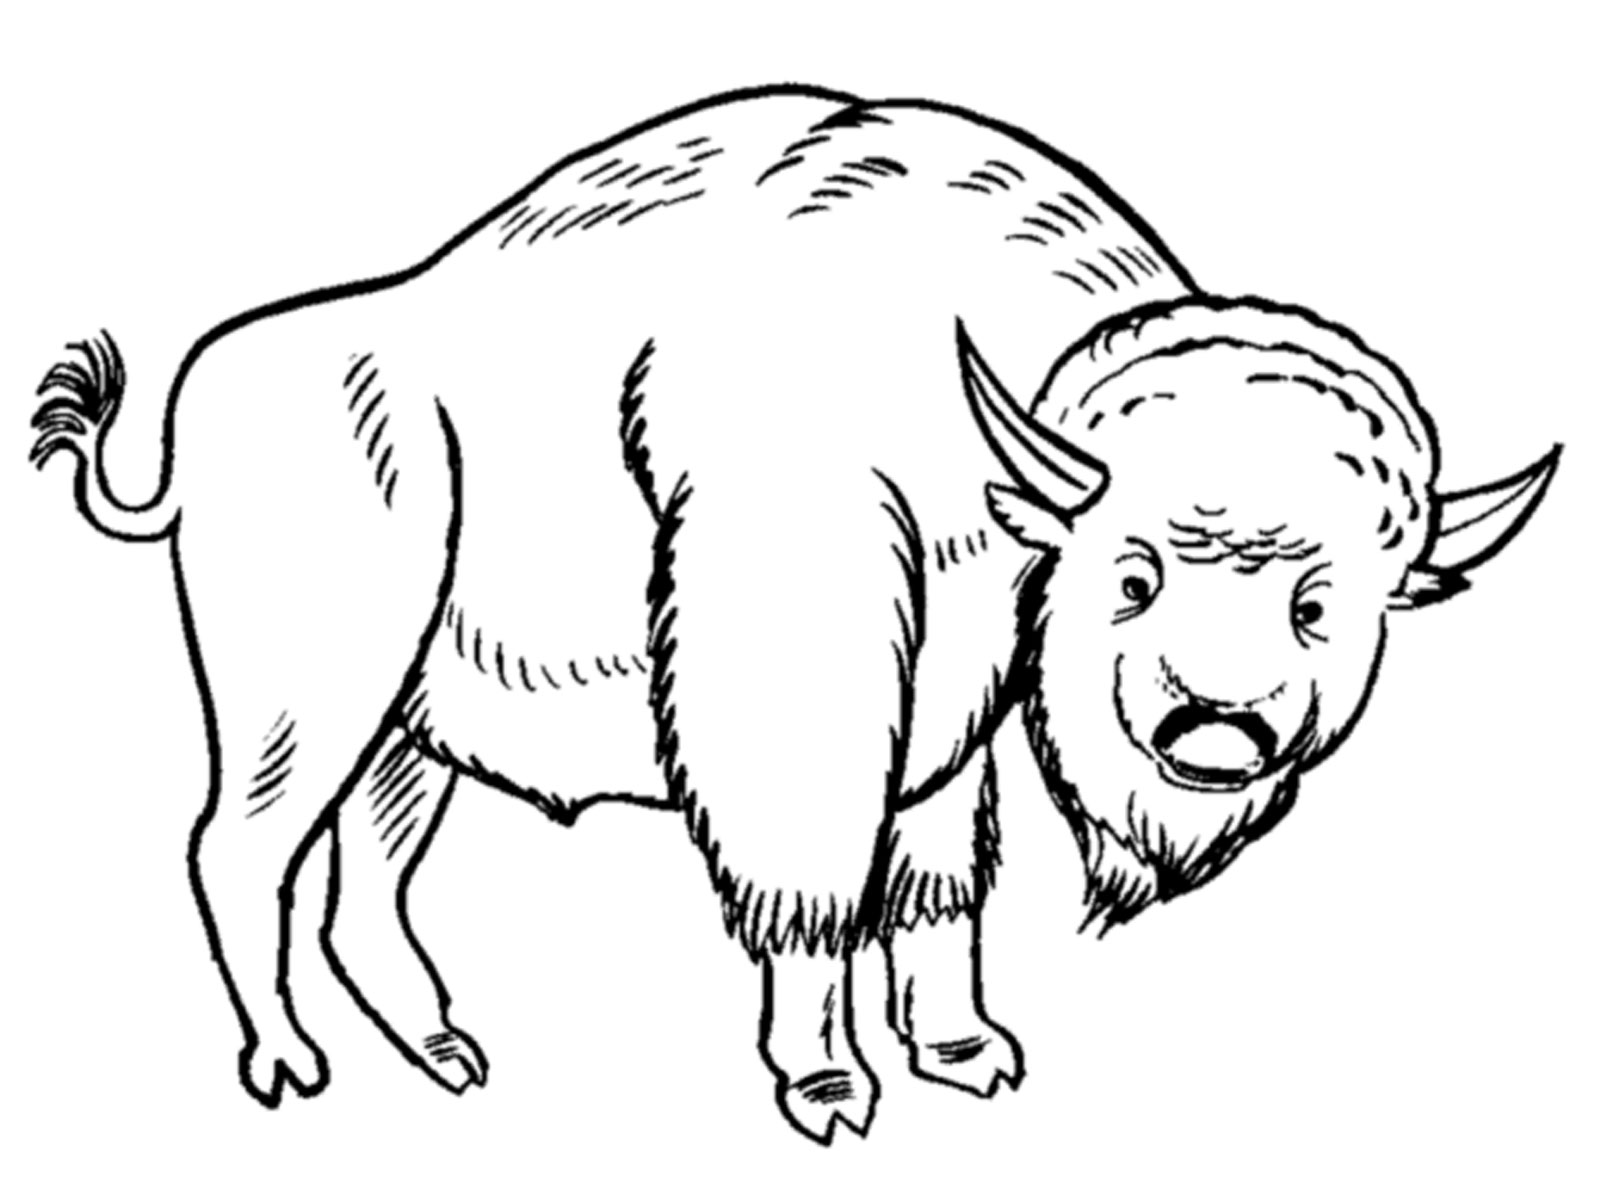 bison coloring pages for kids realistic coloring pages. Black Bedroom Furniture Sets. Home Design Ideas